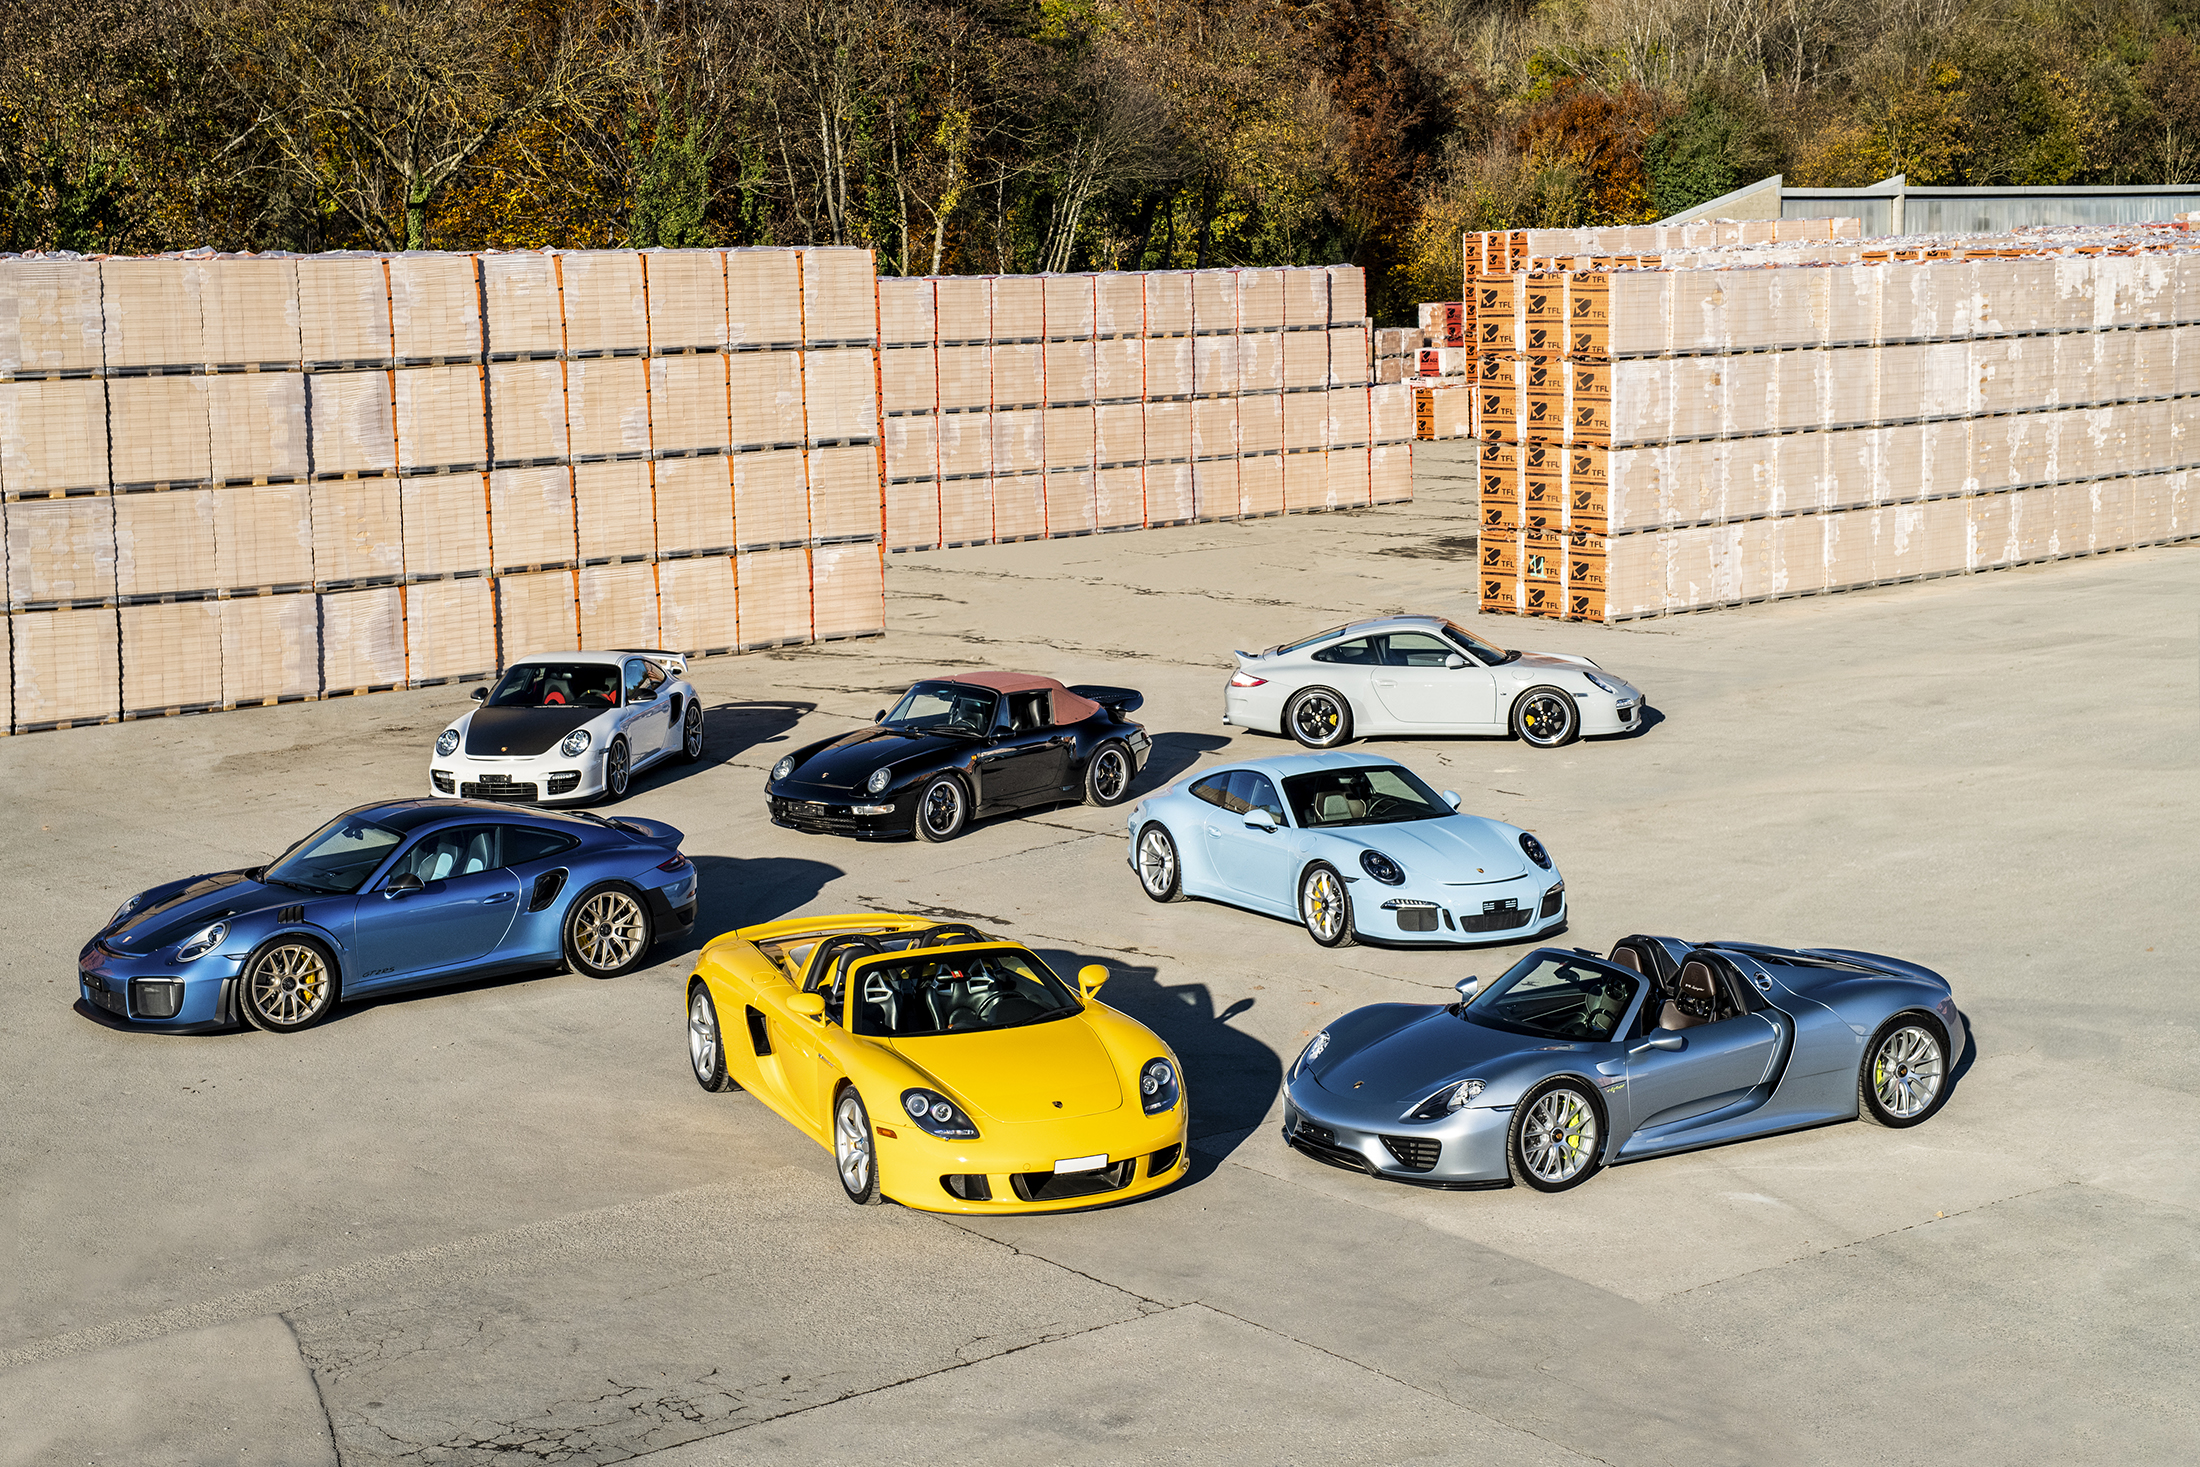 210219 The Swiss Porsche Collection (Credit - Remi Dargegen ©2020 Courtesy of RM Sotheby's)